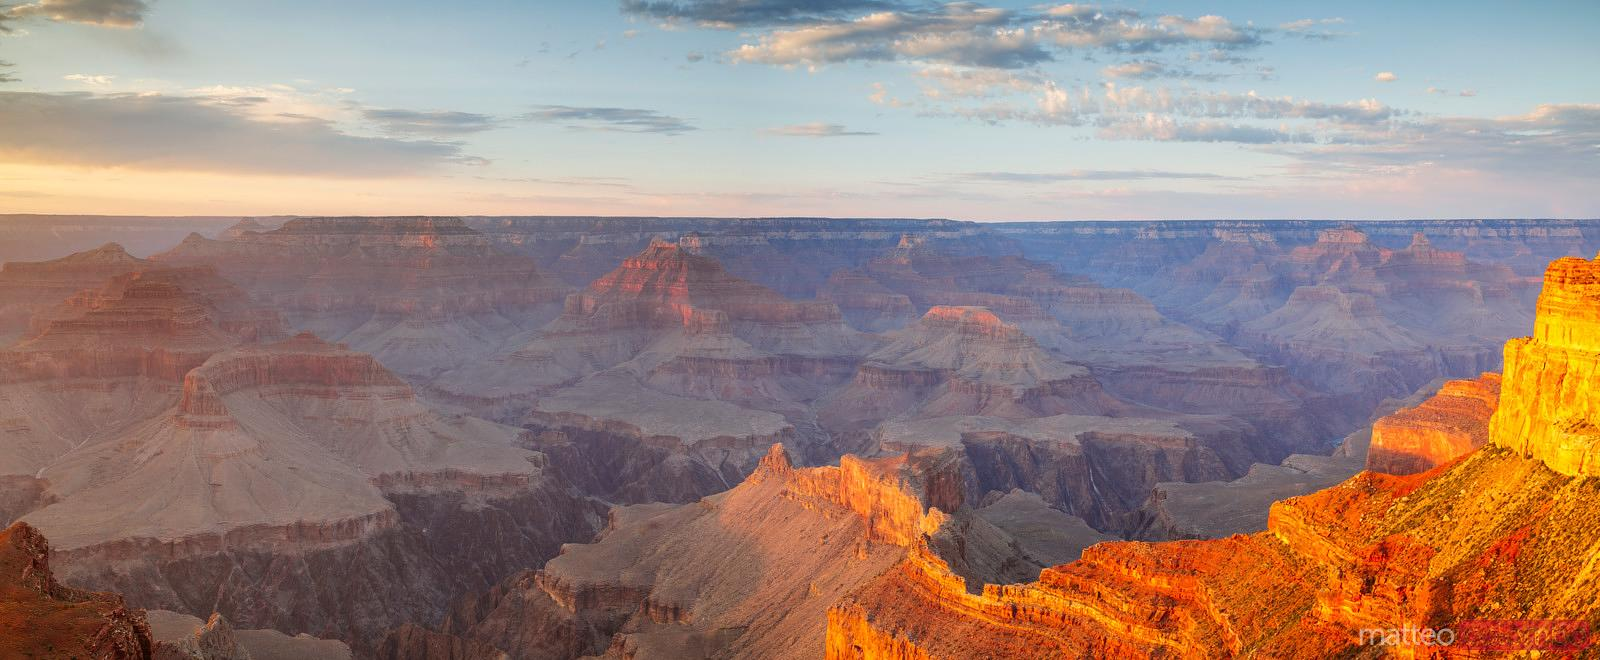 Panoramic sunset over Grand Canyon South Rim, USA